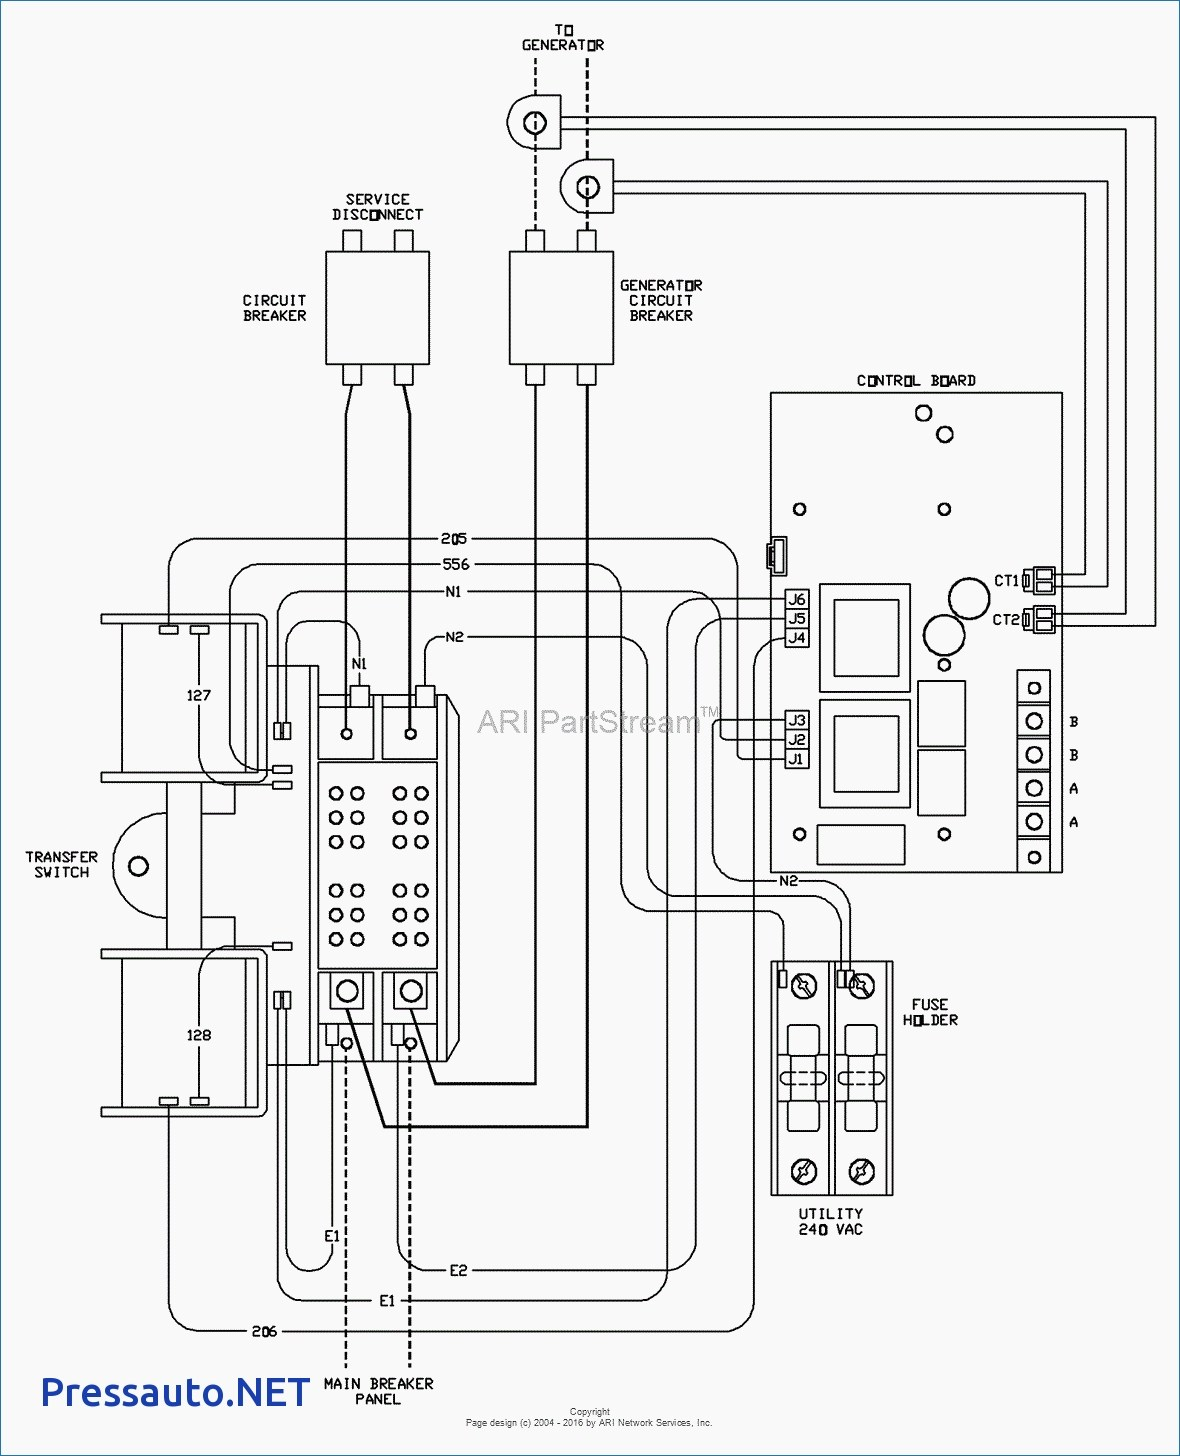 Diagram Generator Transfer Switch Wiring Diagram Download